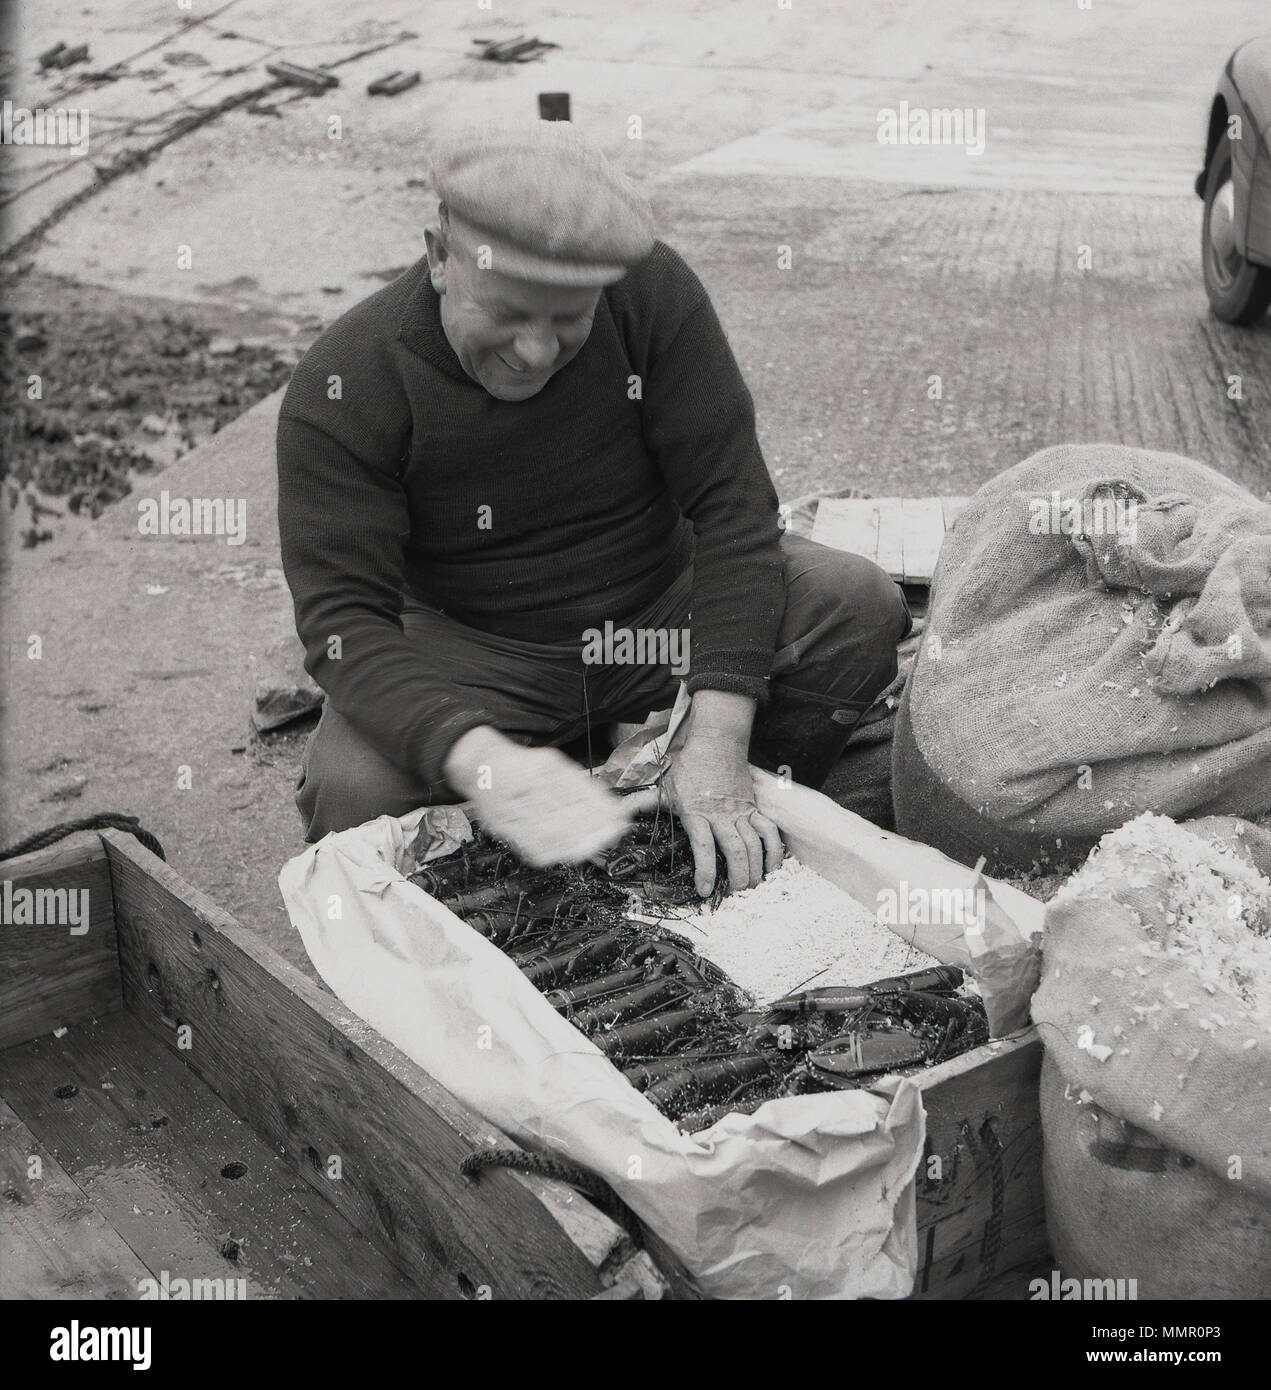 1950s, historical, a fisherman carefully putting his catch